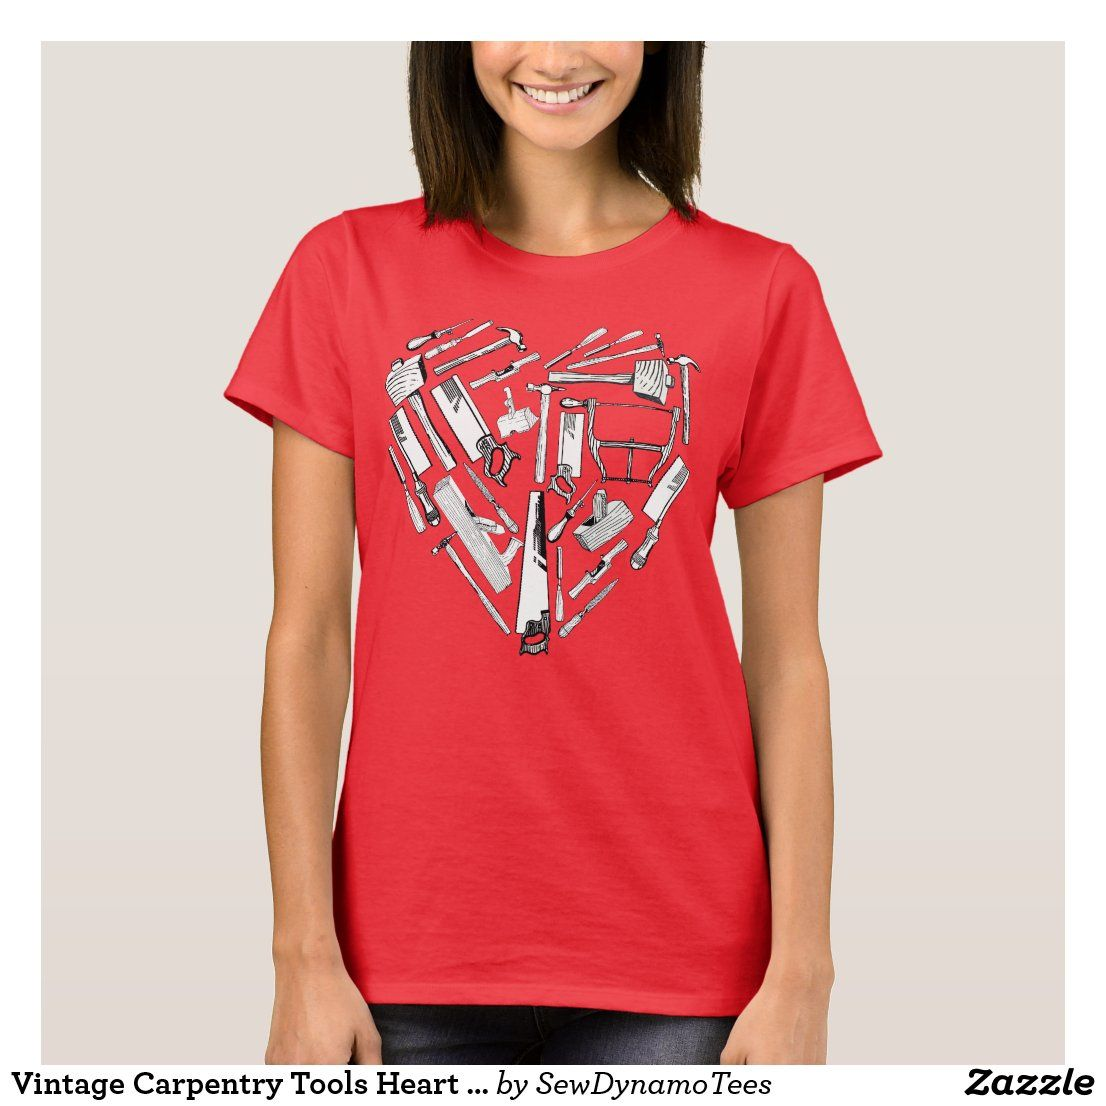 Vintage Carpentry Tools Heart Tshirt Zazzle Co Uk In 2020 Carpentry Tools Carpentry Gifts Carpentry